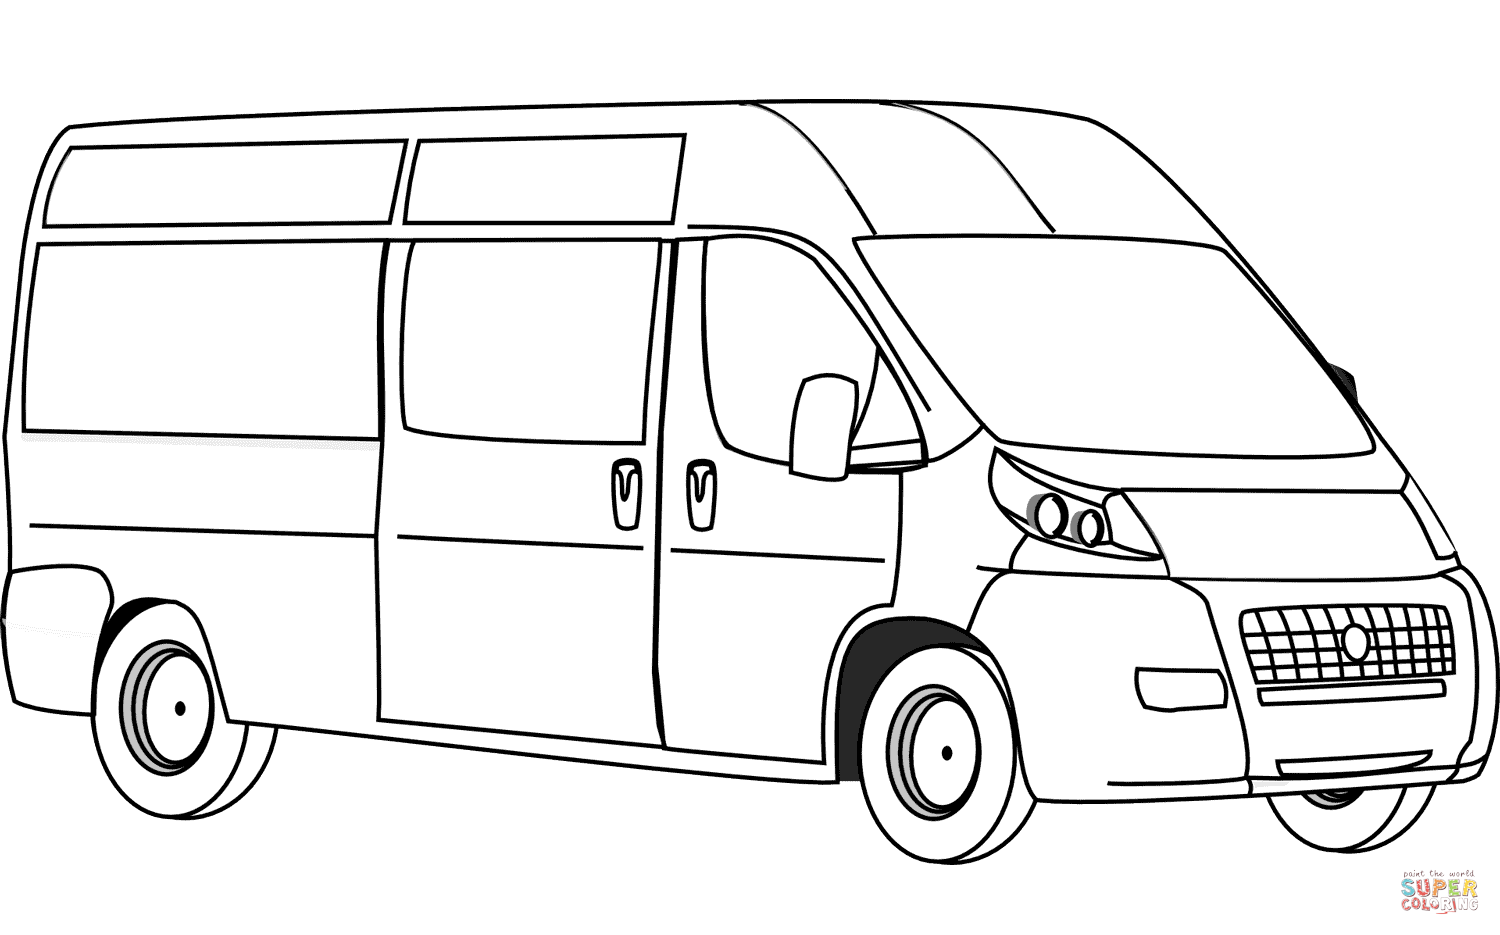 Click the van coloring pages to view printable version or color it online compatible with ipad and android tablets